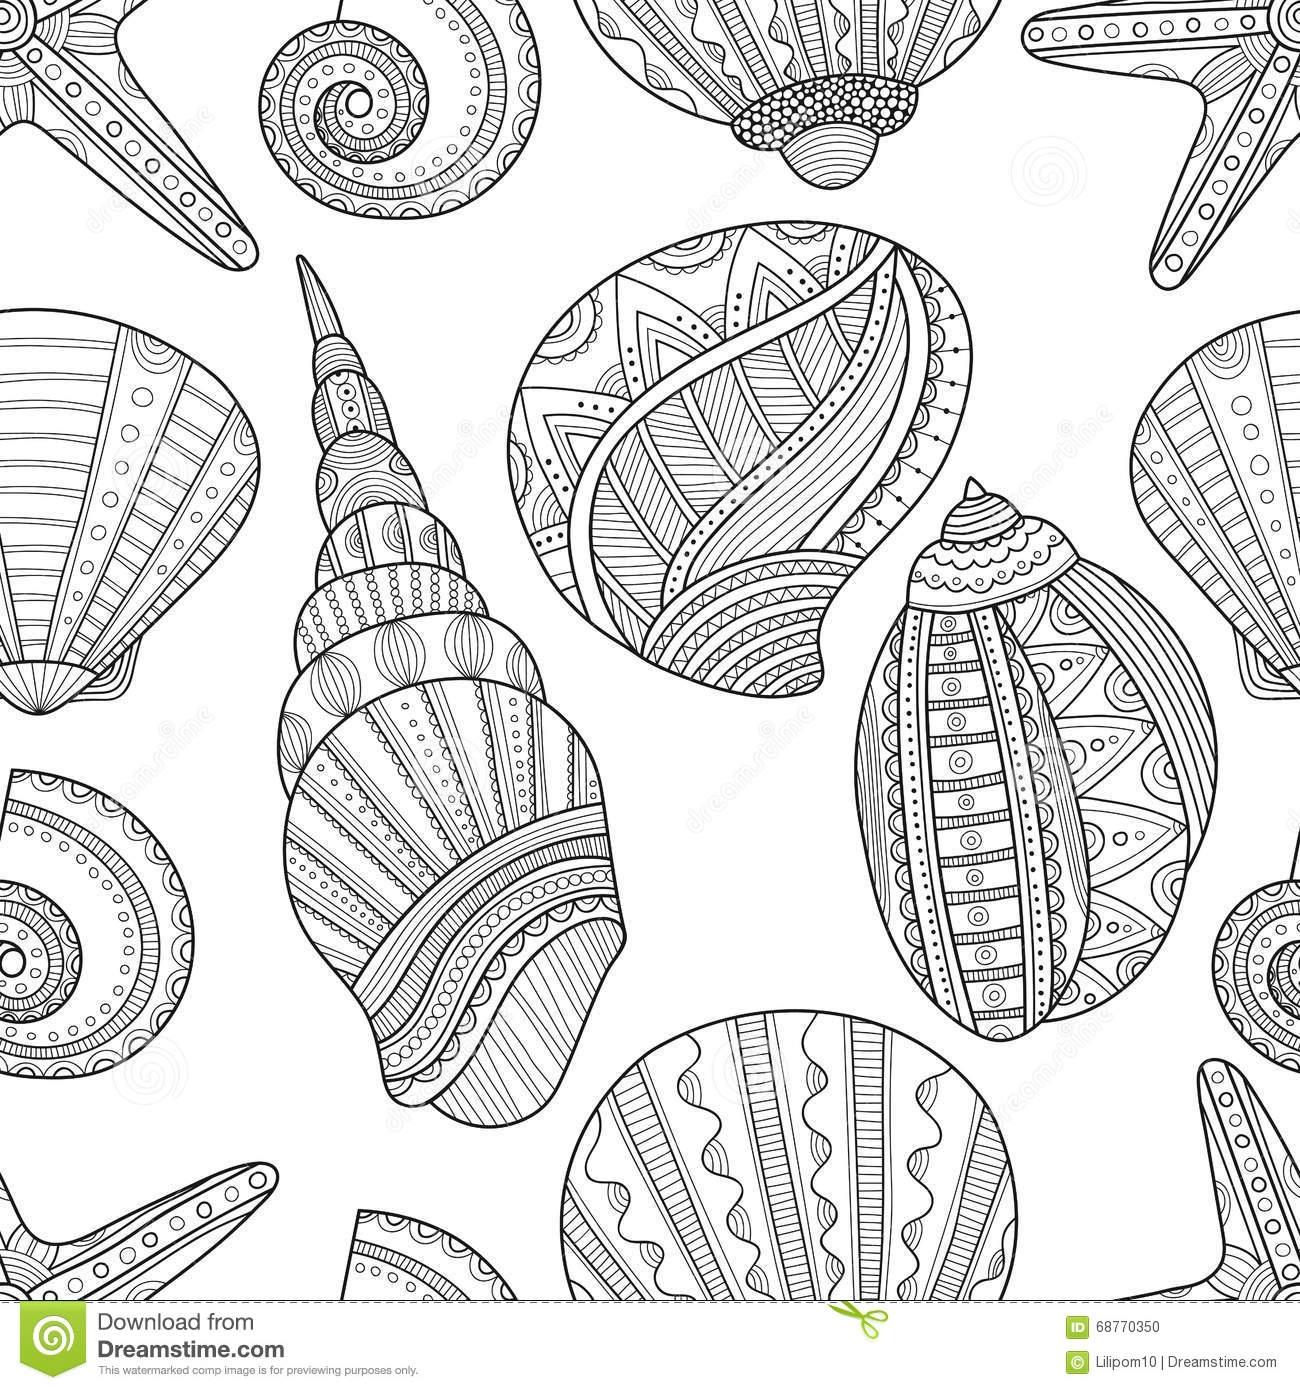 starfish coloring page - stock illustration seamless black white pattern seashells to coloring book sea shells pages vector illustration image